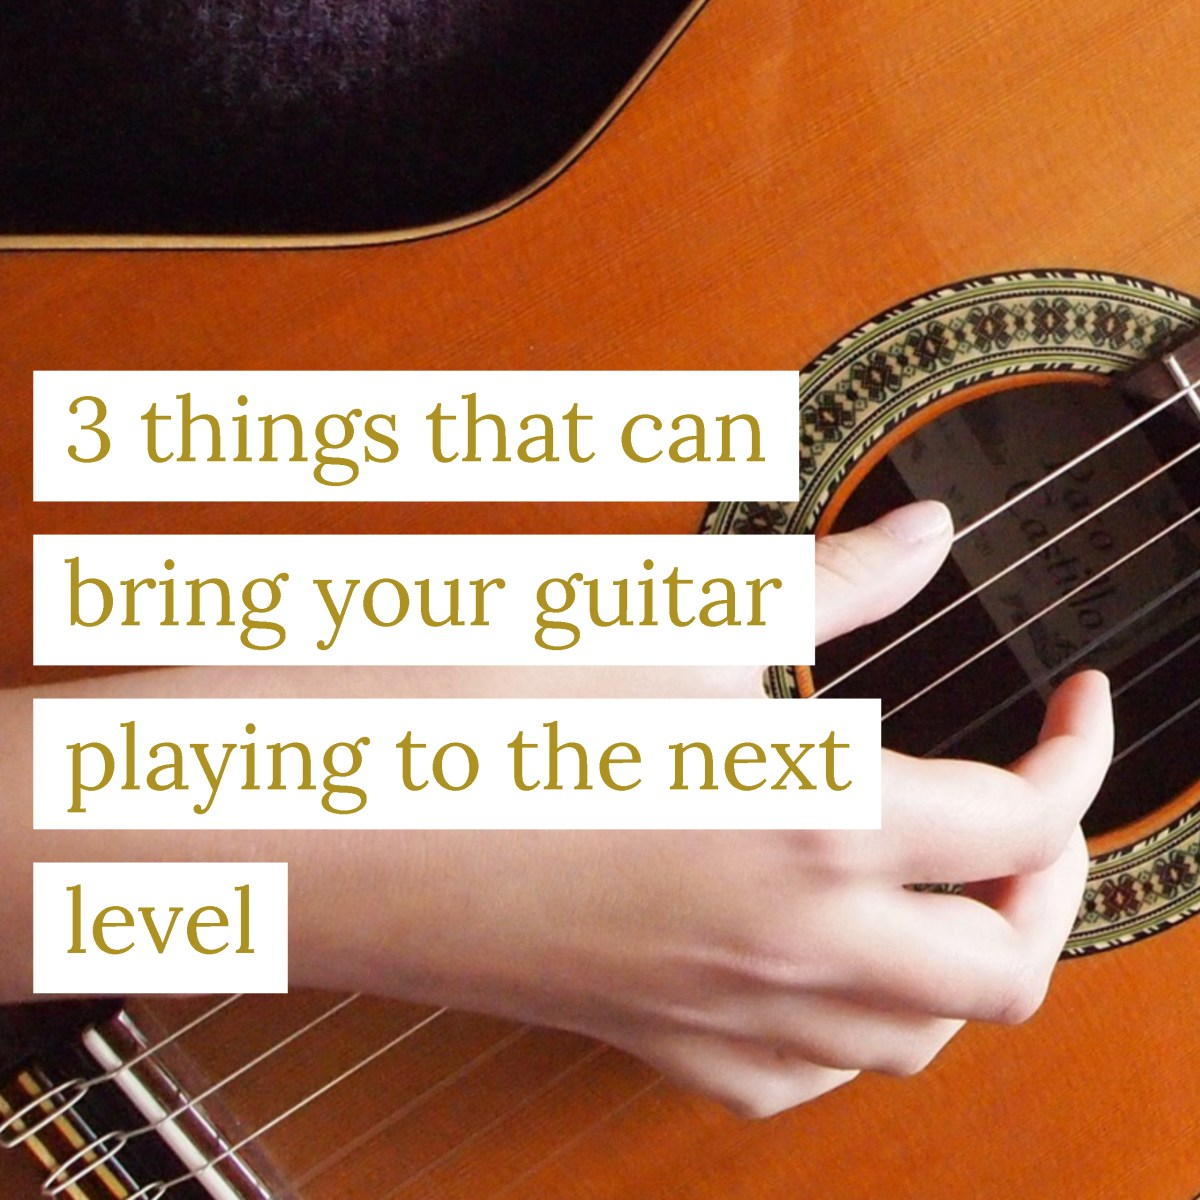 3 things that can bring your guitar playing to the next level